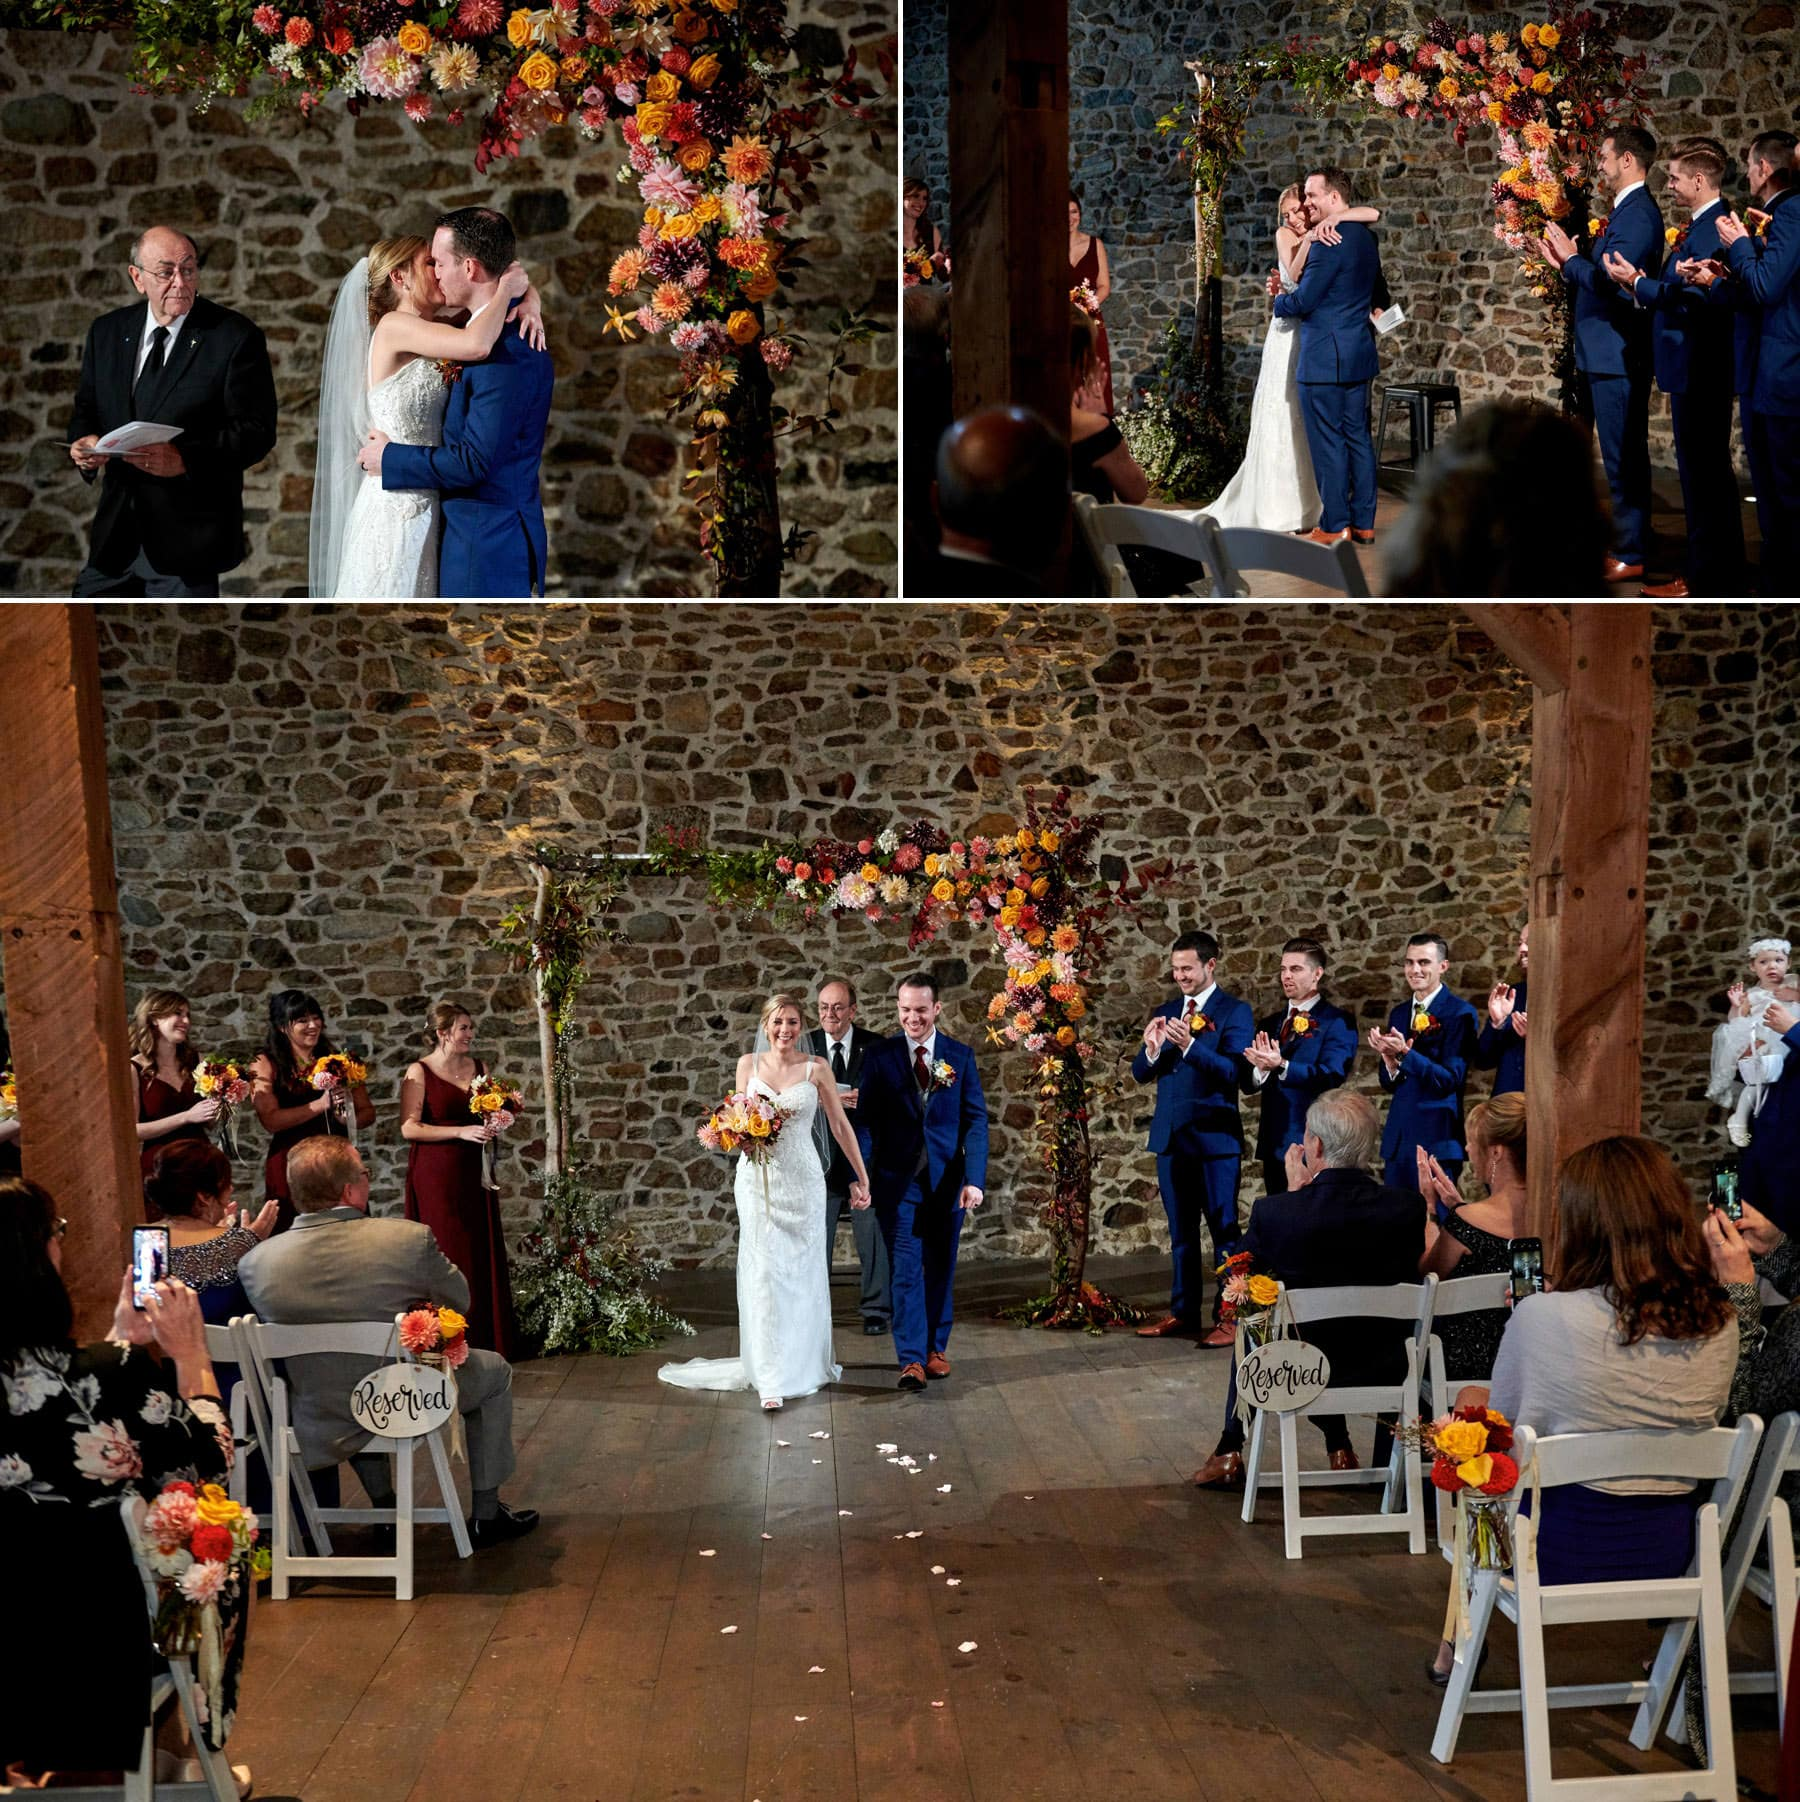 French Creek Golf Club barn ceremony photos